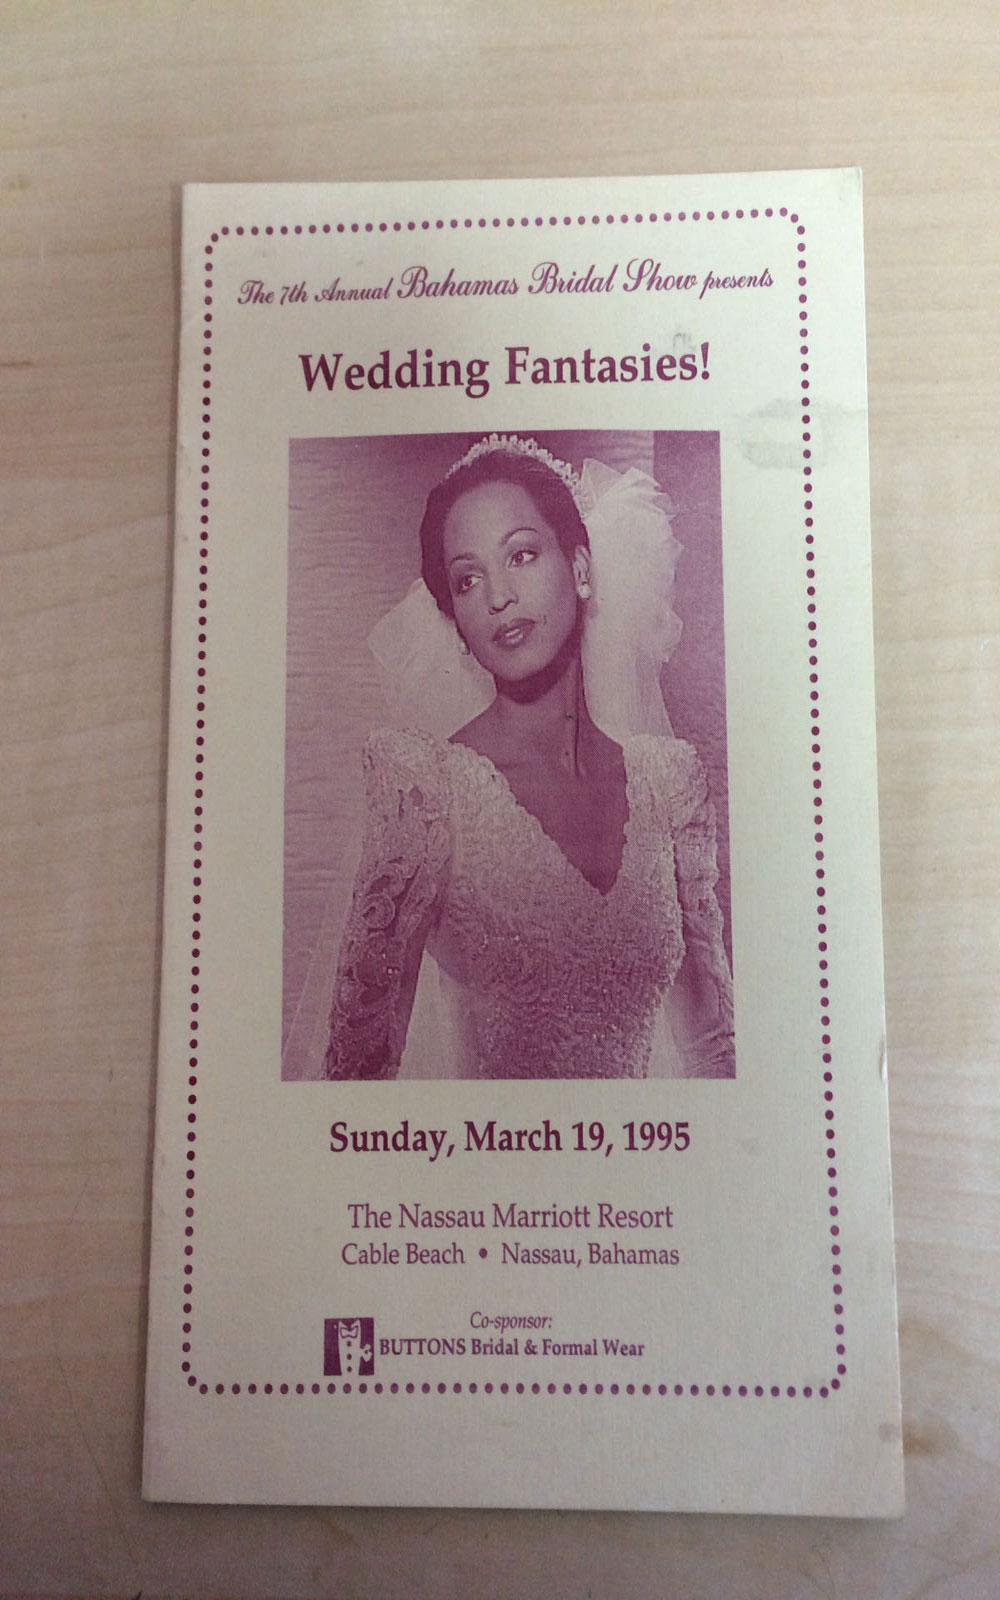 The Wedding Guide 1995